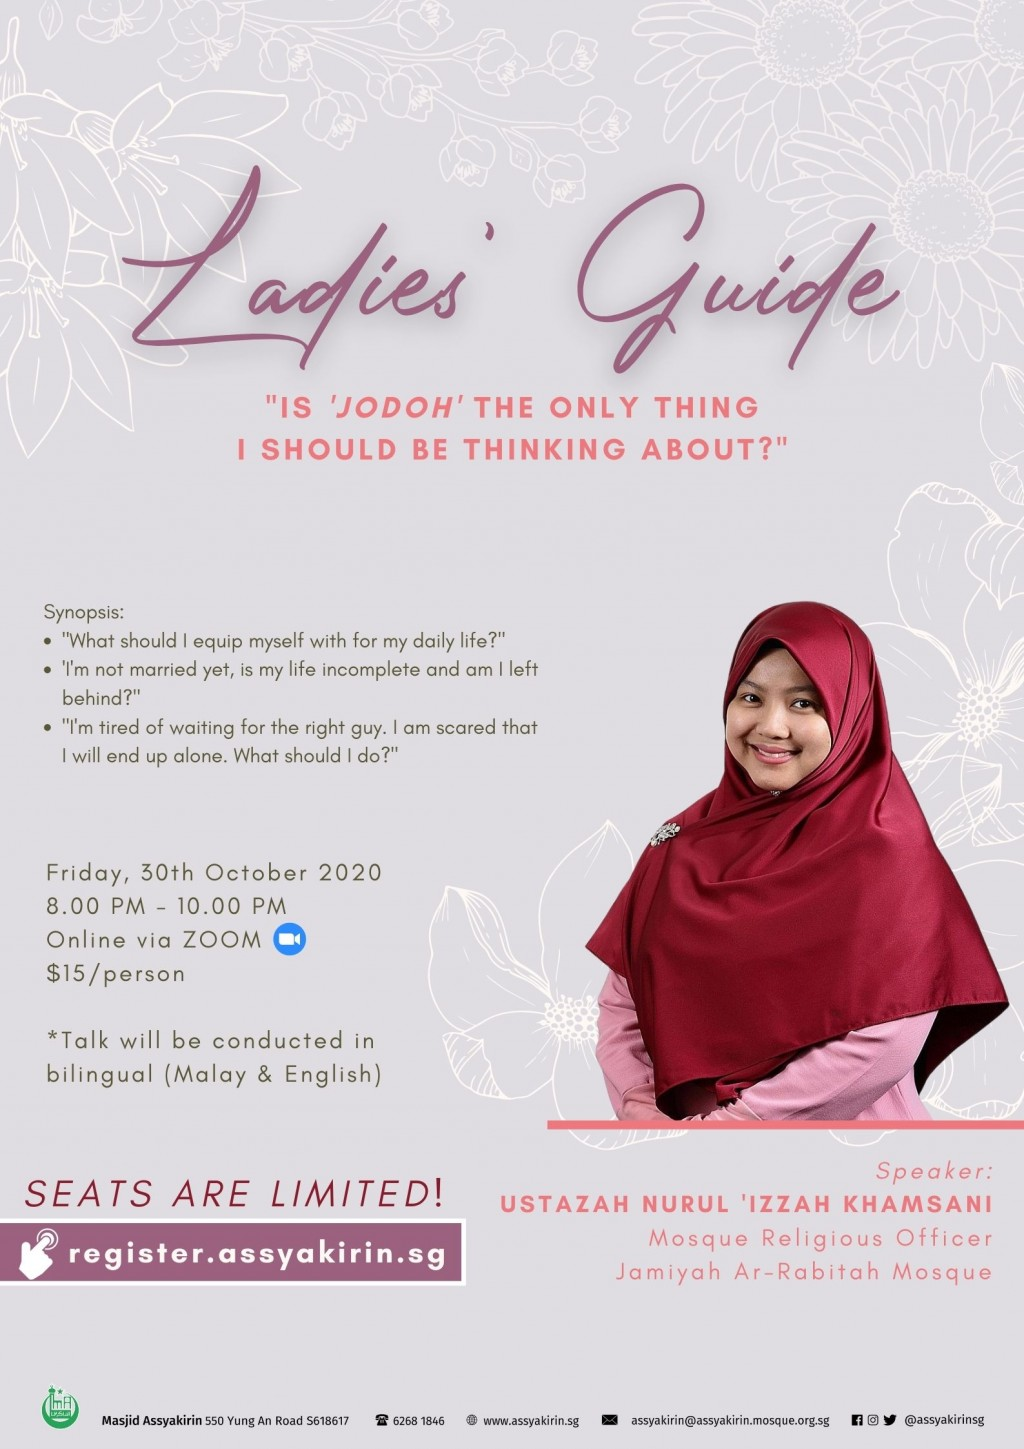 Ladies' Guide: Is 'jodoh' the only thing I should be thinking about?